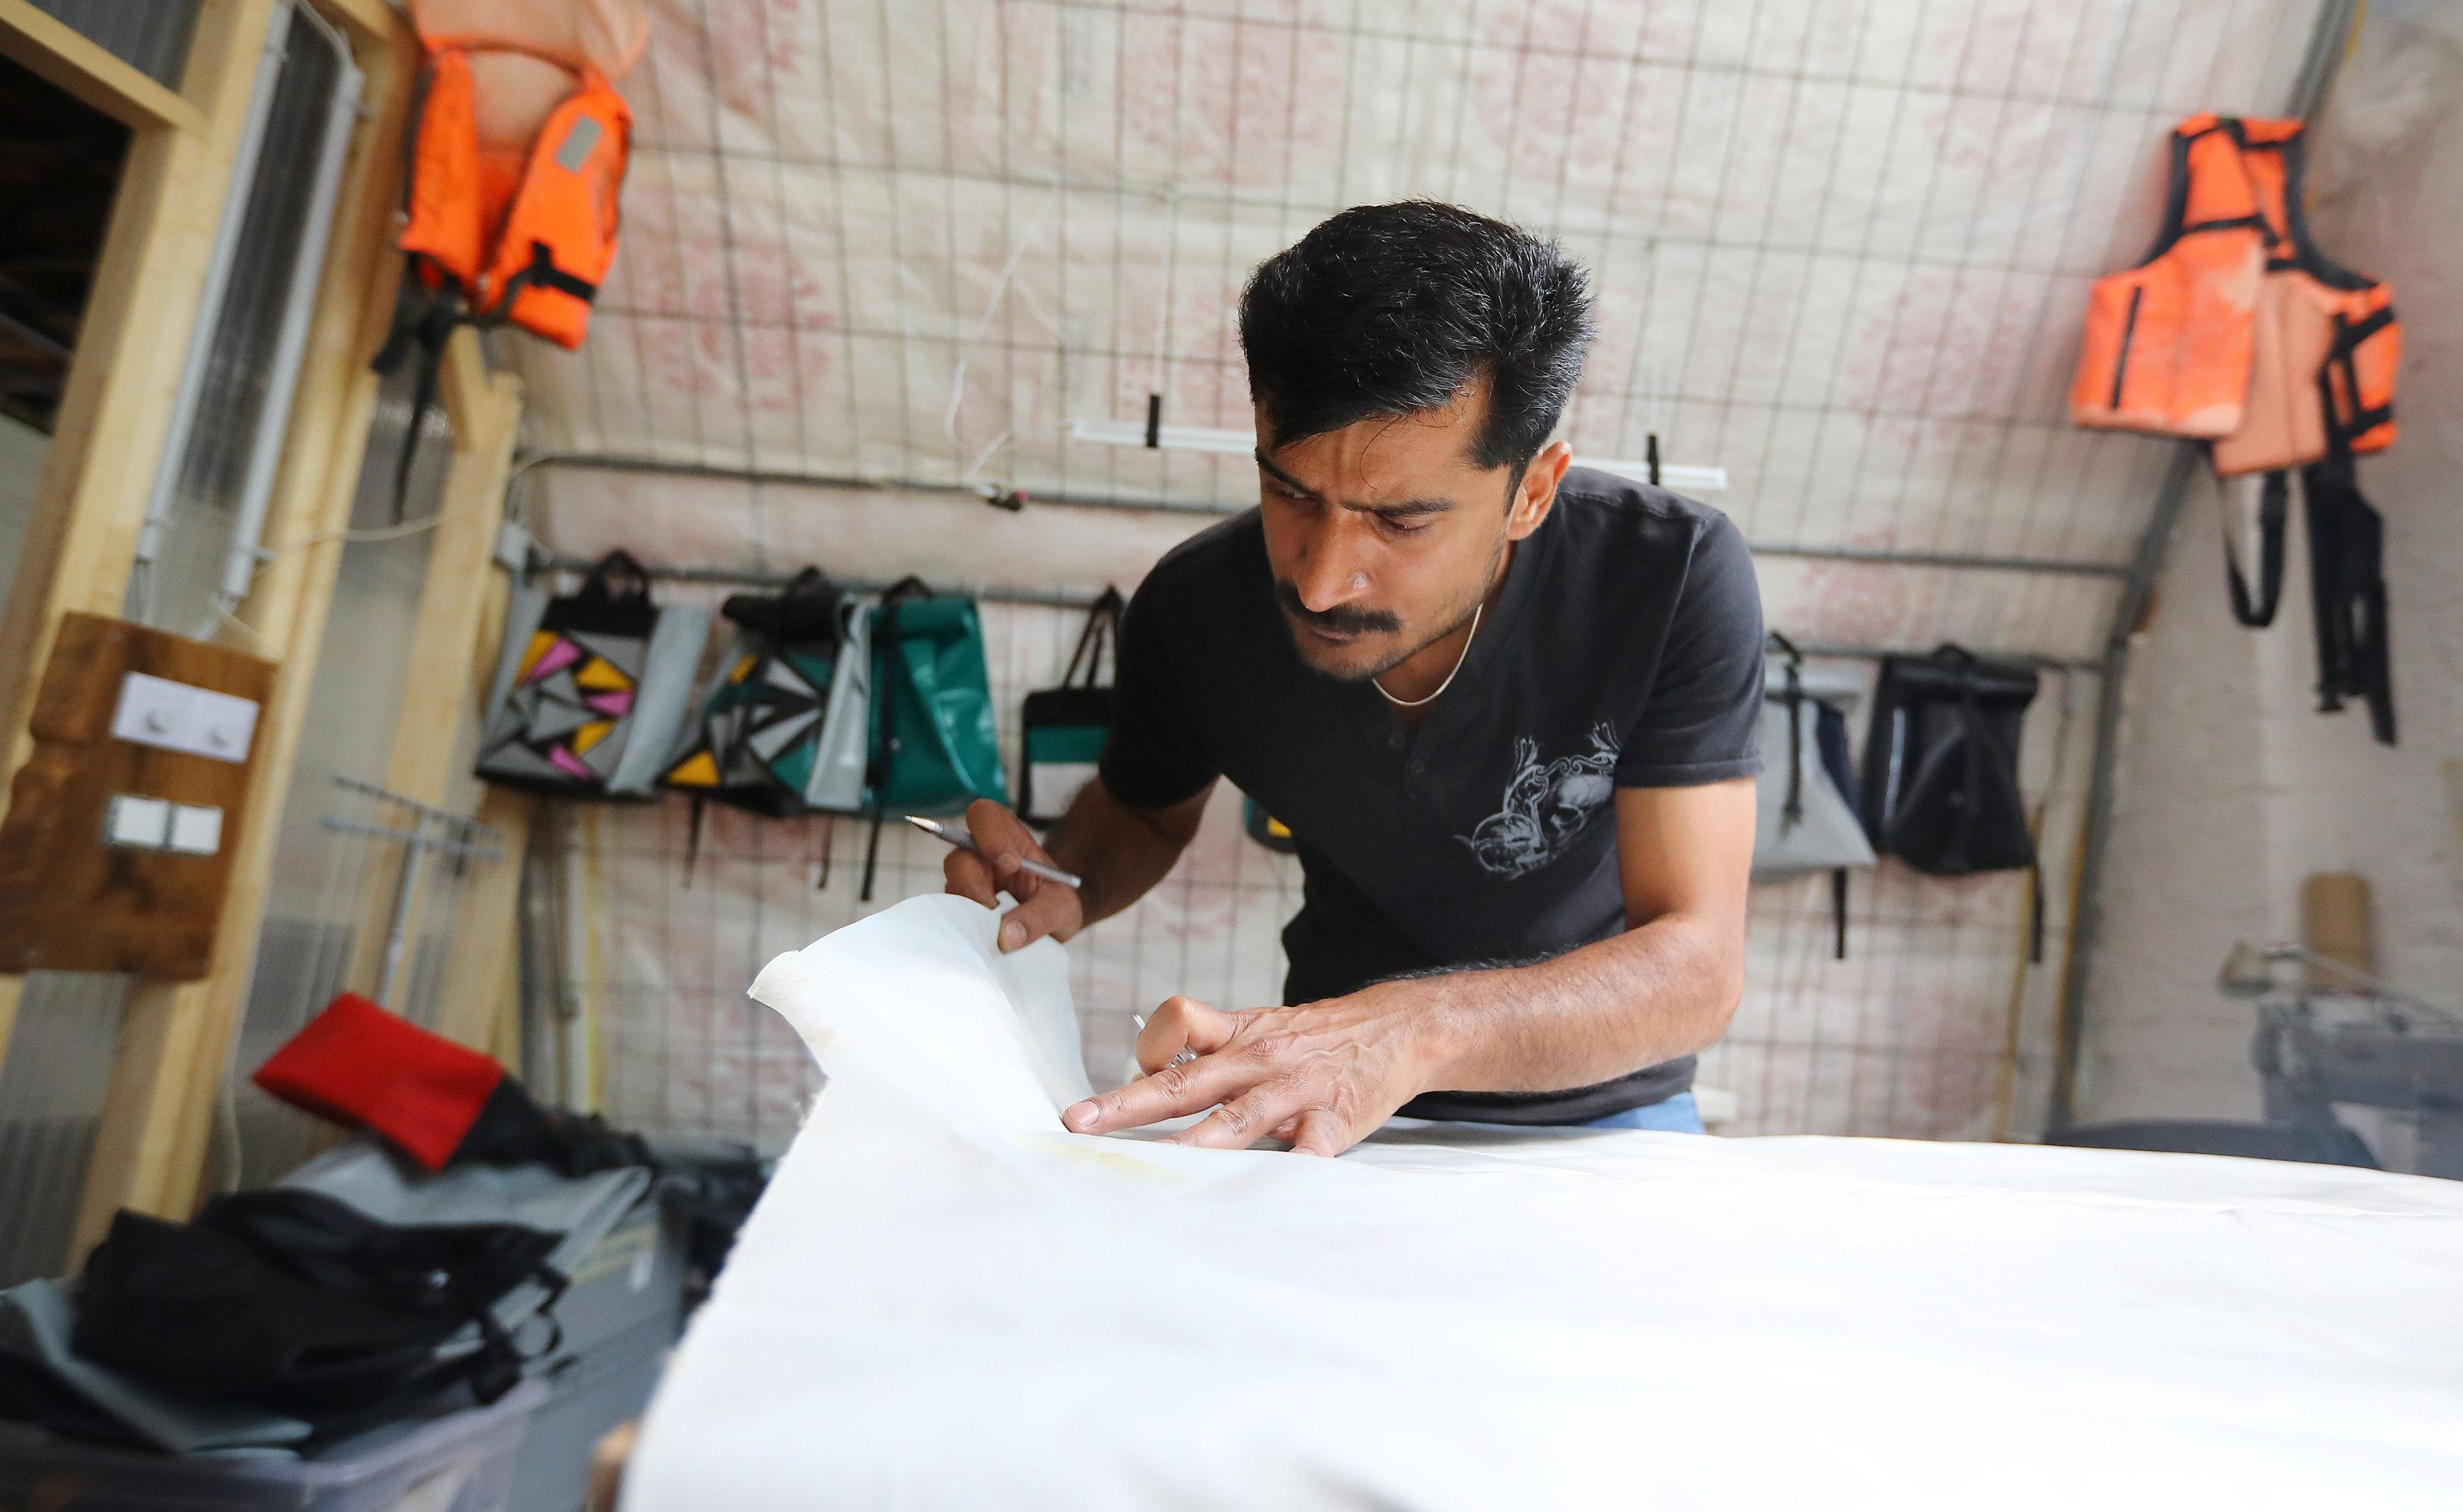 Migrant Abid Ali from Pakistan works as tailor and designer at the non-profit organization Mimycri, which recycles parts of a discarded dinghies into bags, in Berlin, Germany, July 23, 2018. Hannibal Hanschke